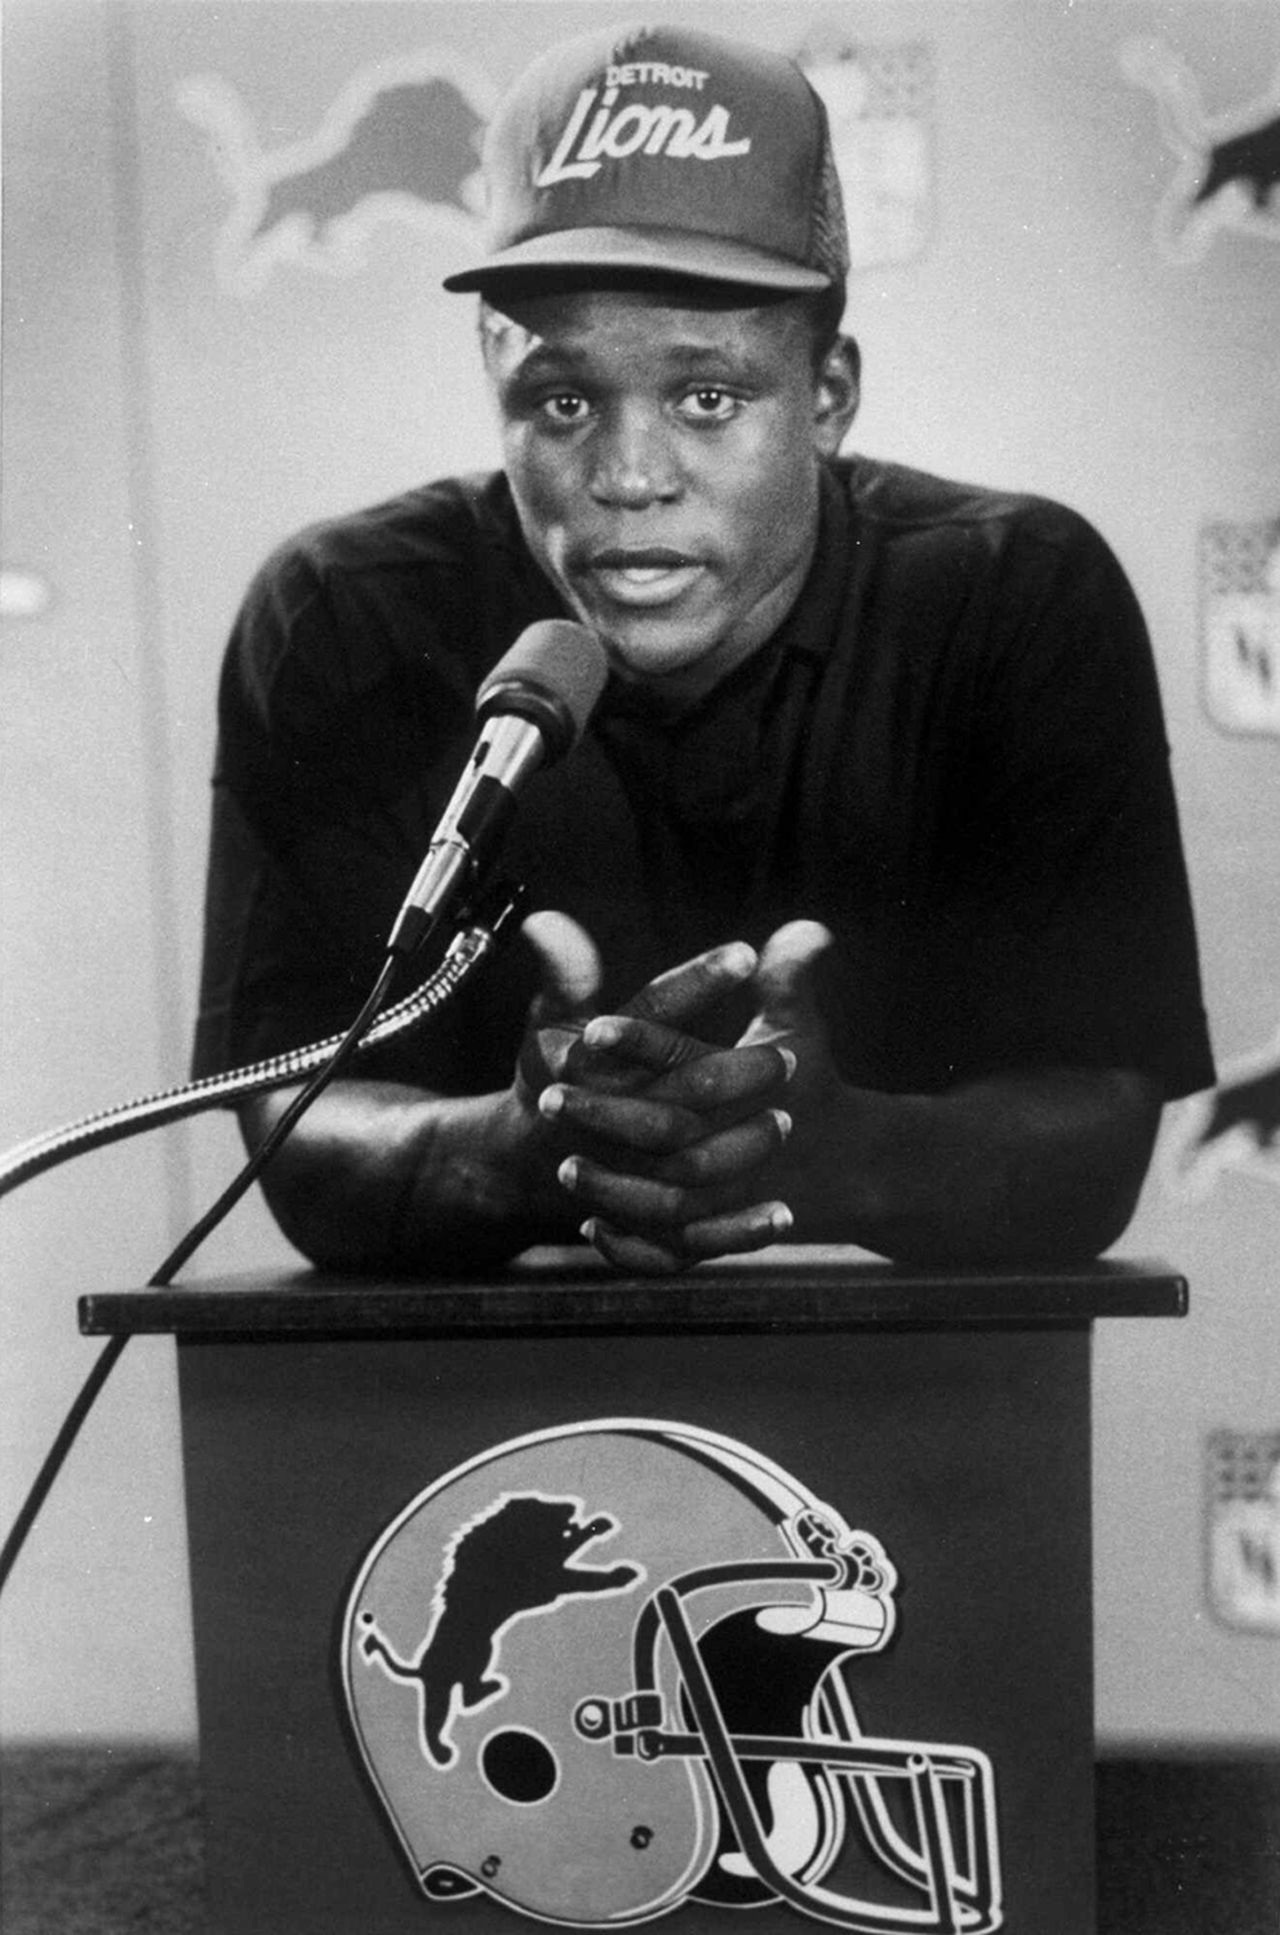 "Oklahoma State running back and 1988 Heisman Trophy winner <a href=""http://www.nfl.com/player/barrysanders/2502817/profile"">Barry Sanders</a> appears during a news conference after signing his first NFL contract at the Pontiac Silverdome in Pontiac, Mich., in 1989. Sanders was the <a href=""http://www.nfl.com/teams/profile?team=DET"">Detroit Lions'</a> first-round draft pick in the 1989 NFL Draft."